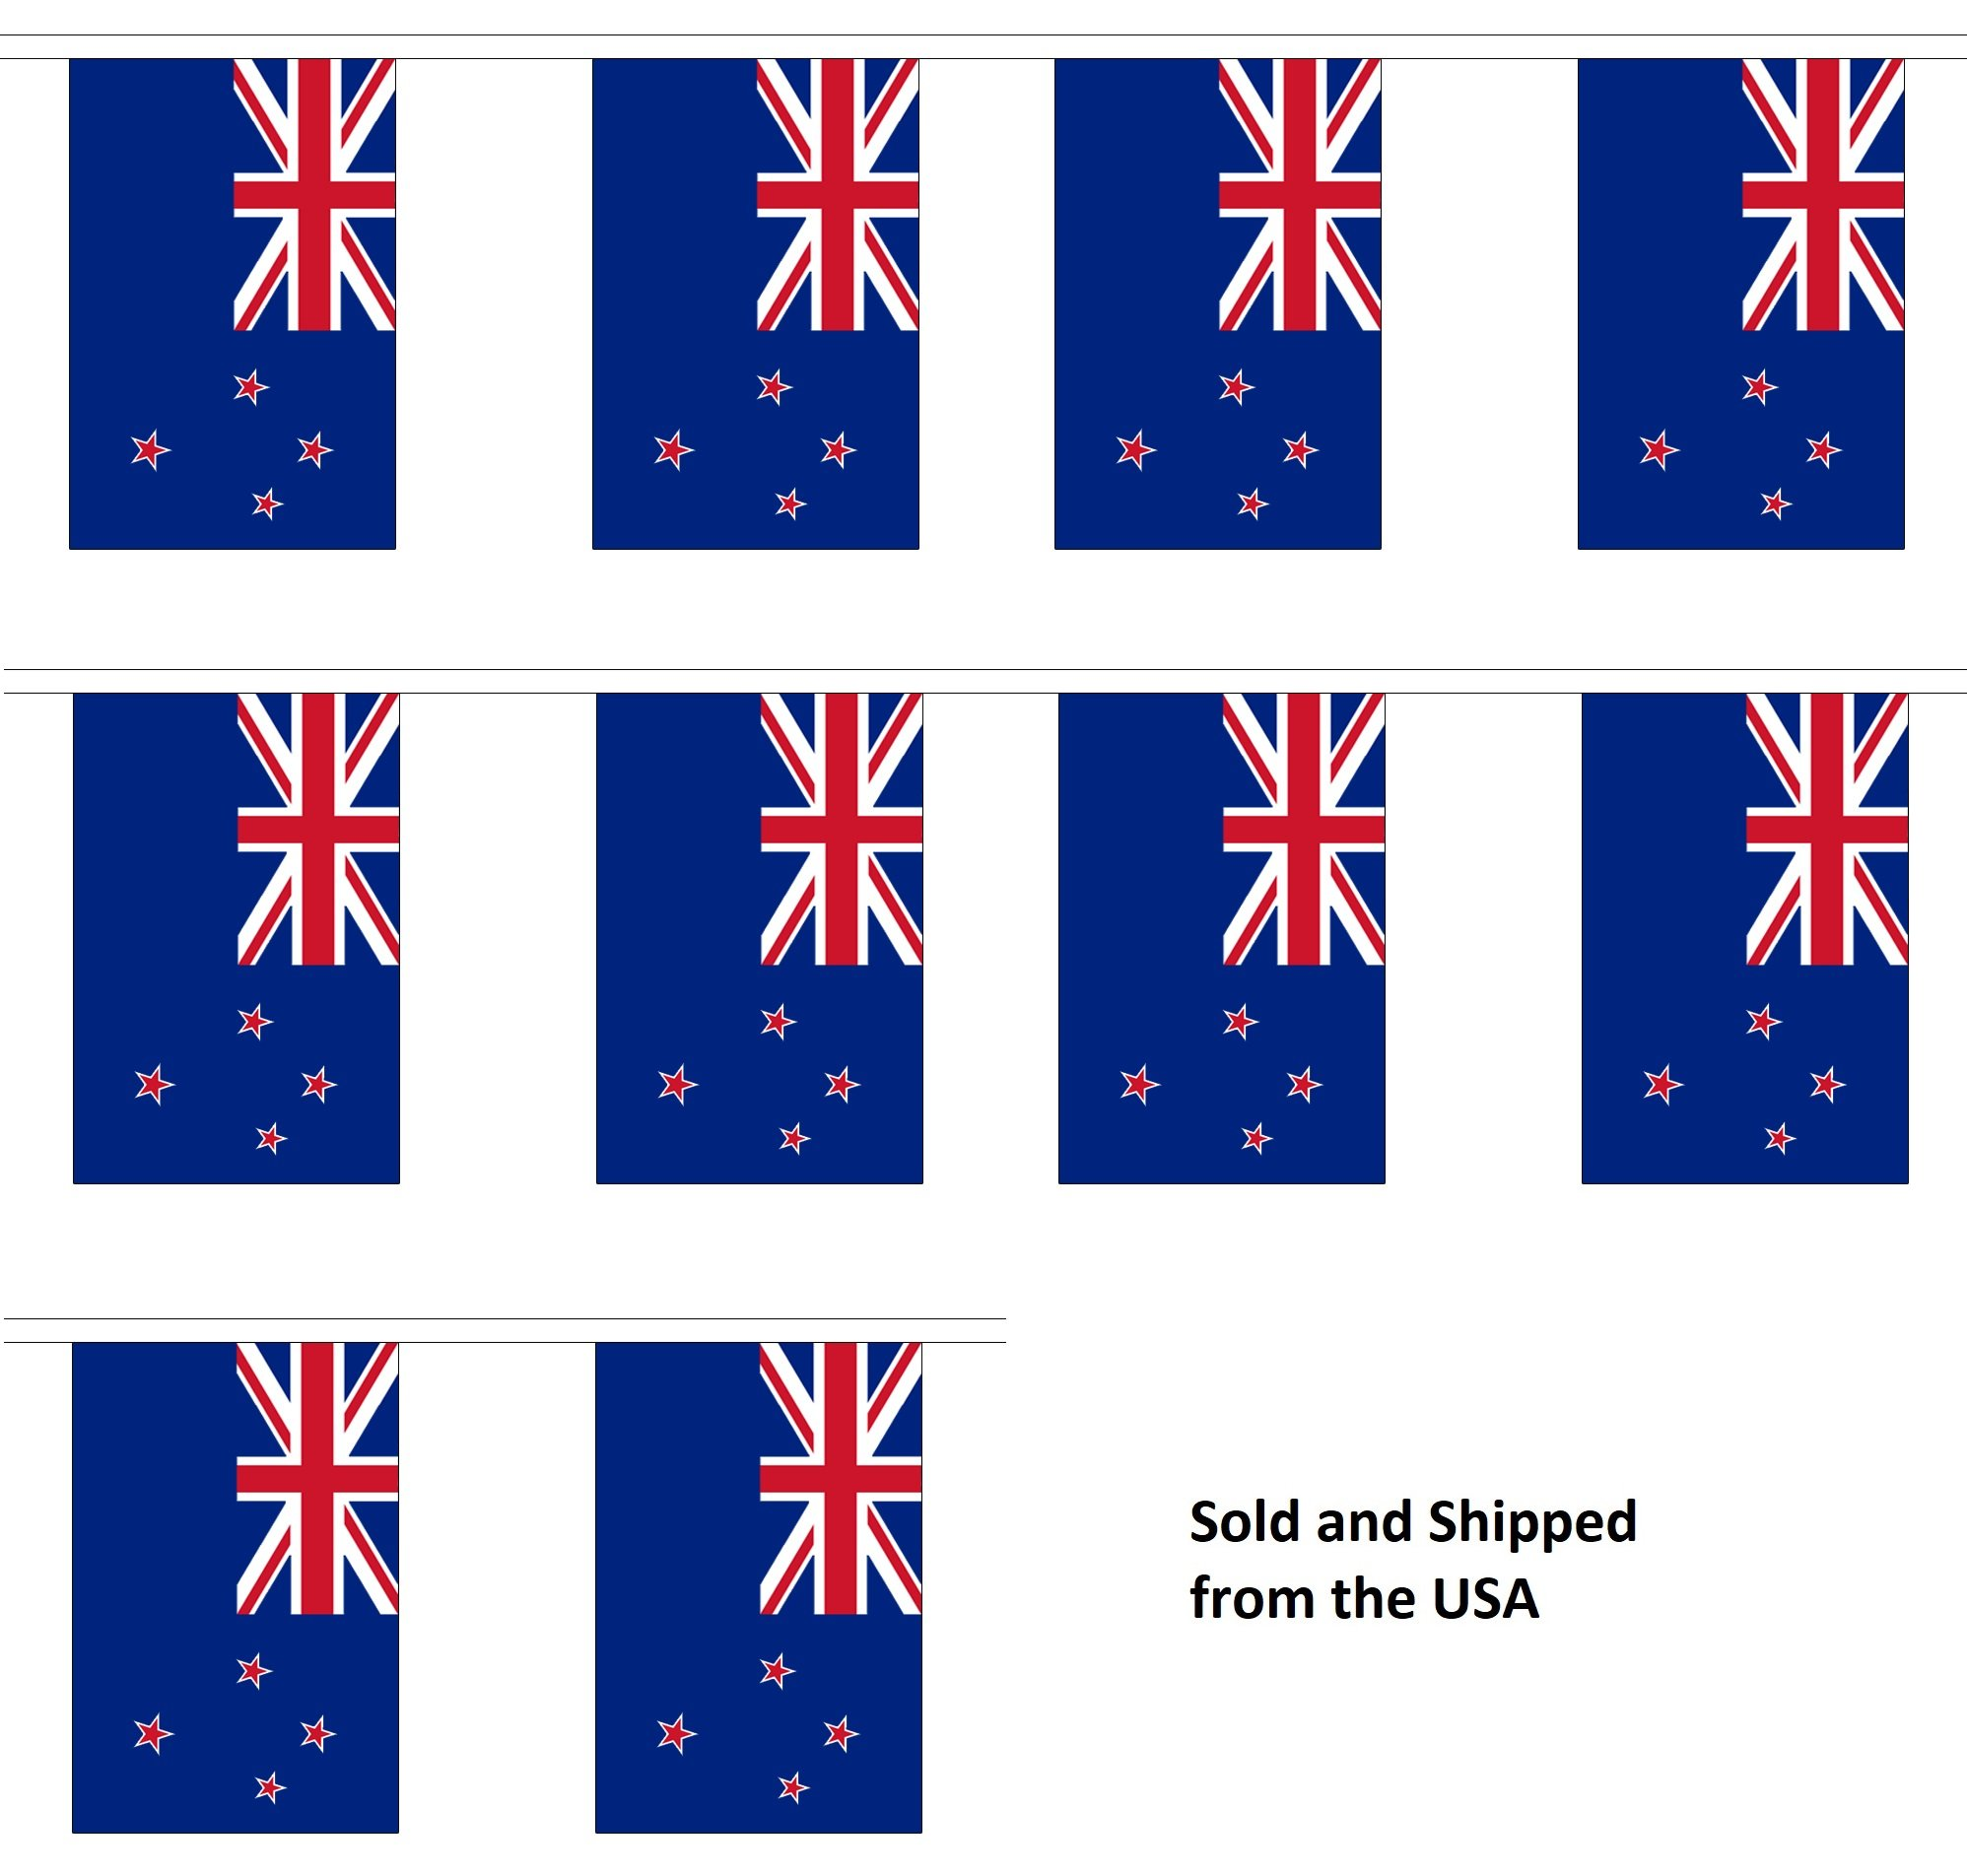 30' New Zealand String Flag Party Bunting Has 30 New Zealander 6''x9'' Polyester Banner Flags Attached, Popular For School Classroom, Special Events, Bars, Restaurants, Country Theme Parties